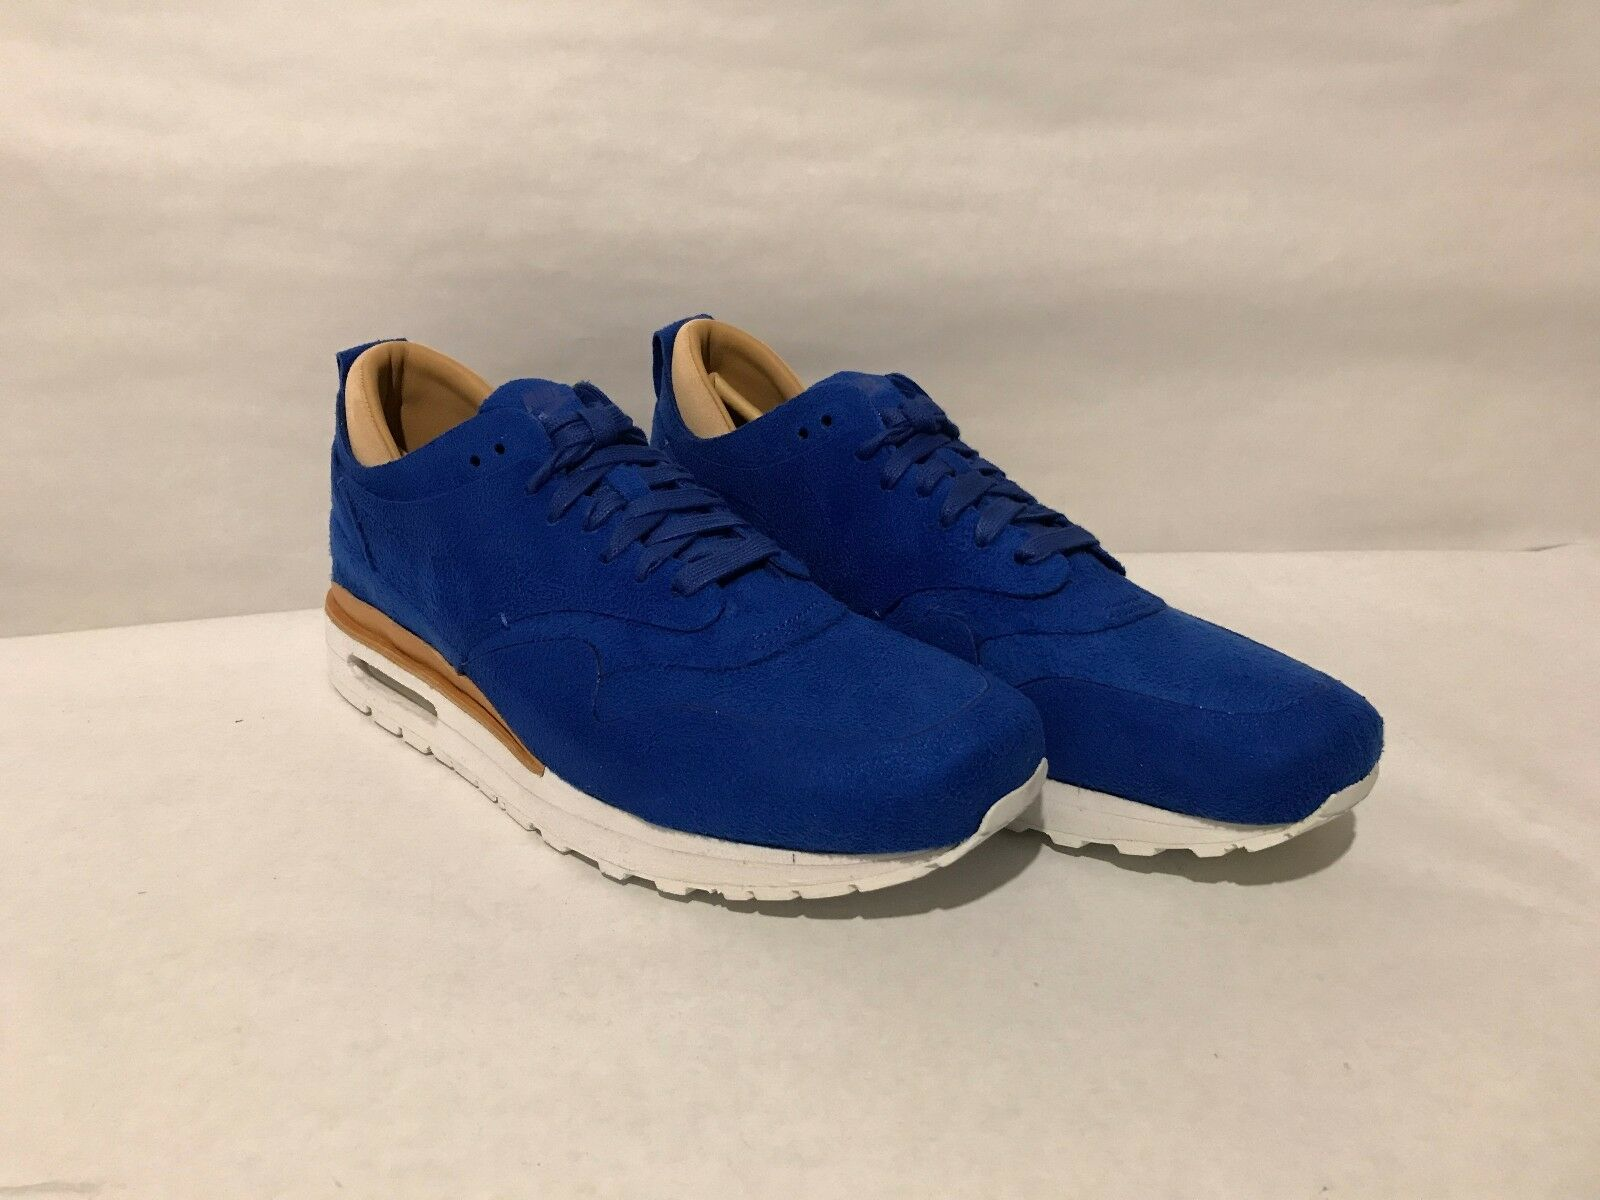 847671-441 Nike Air Max 1 Royal